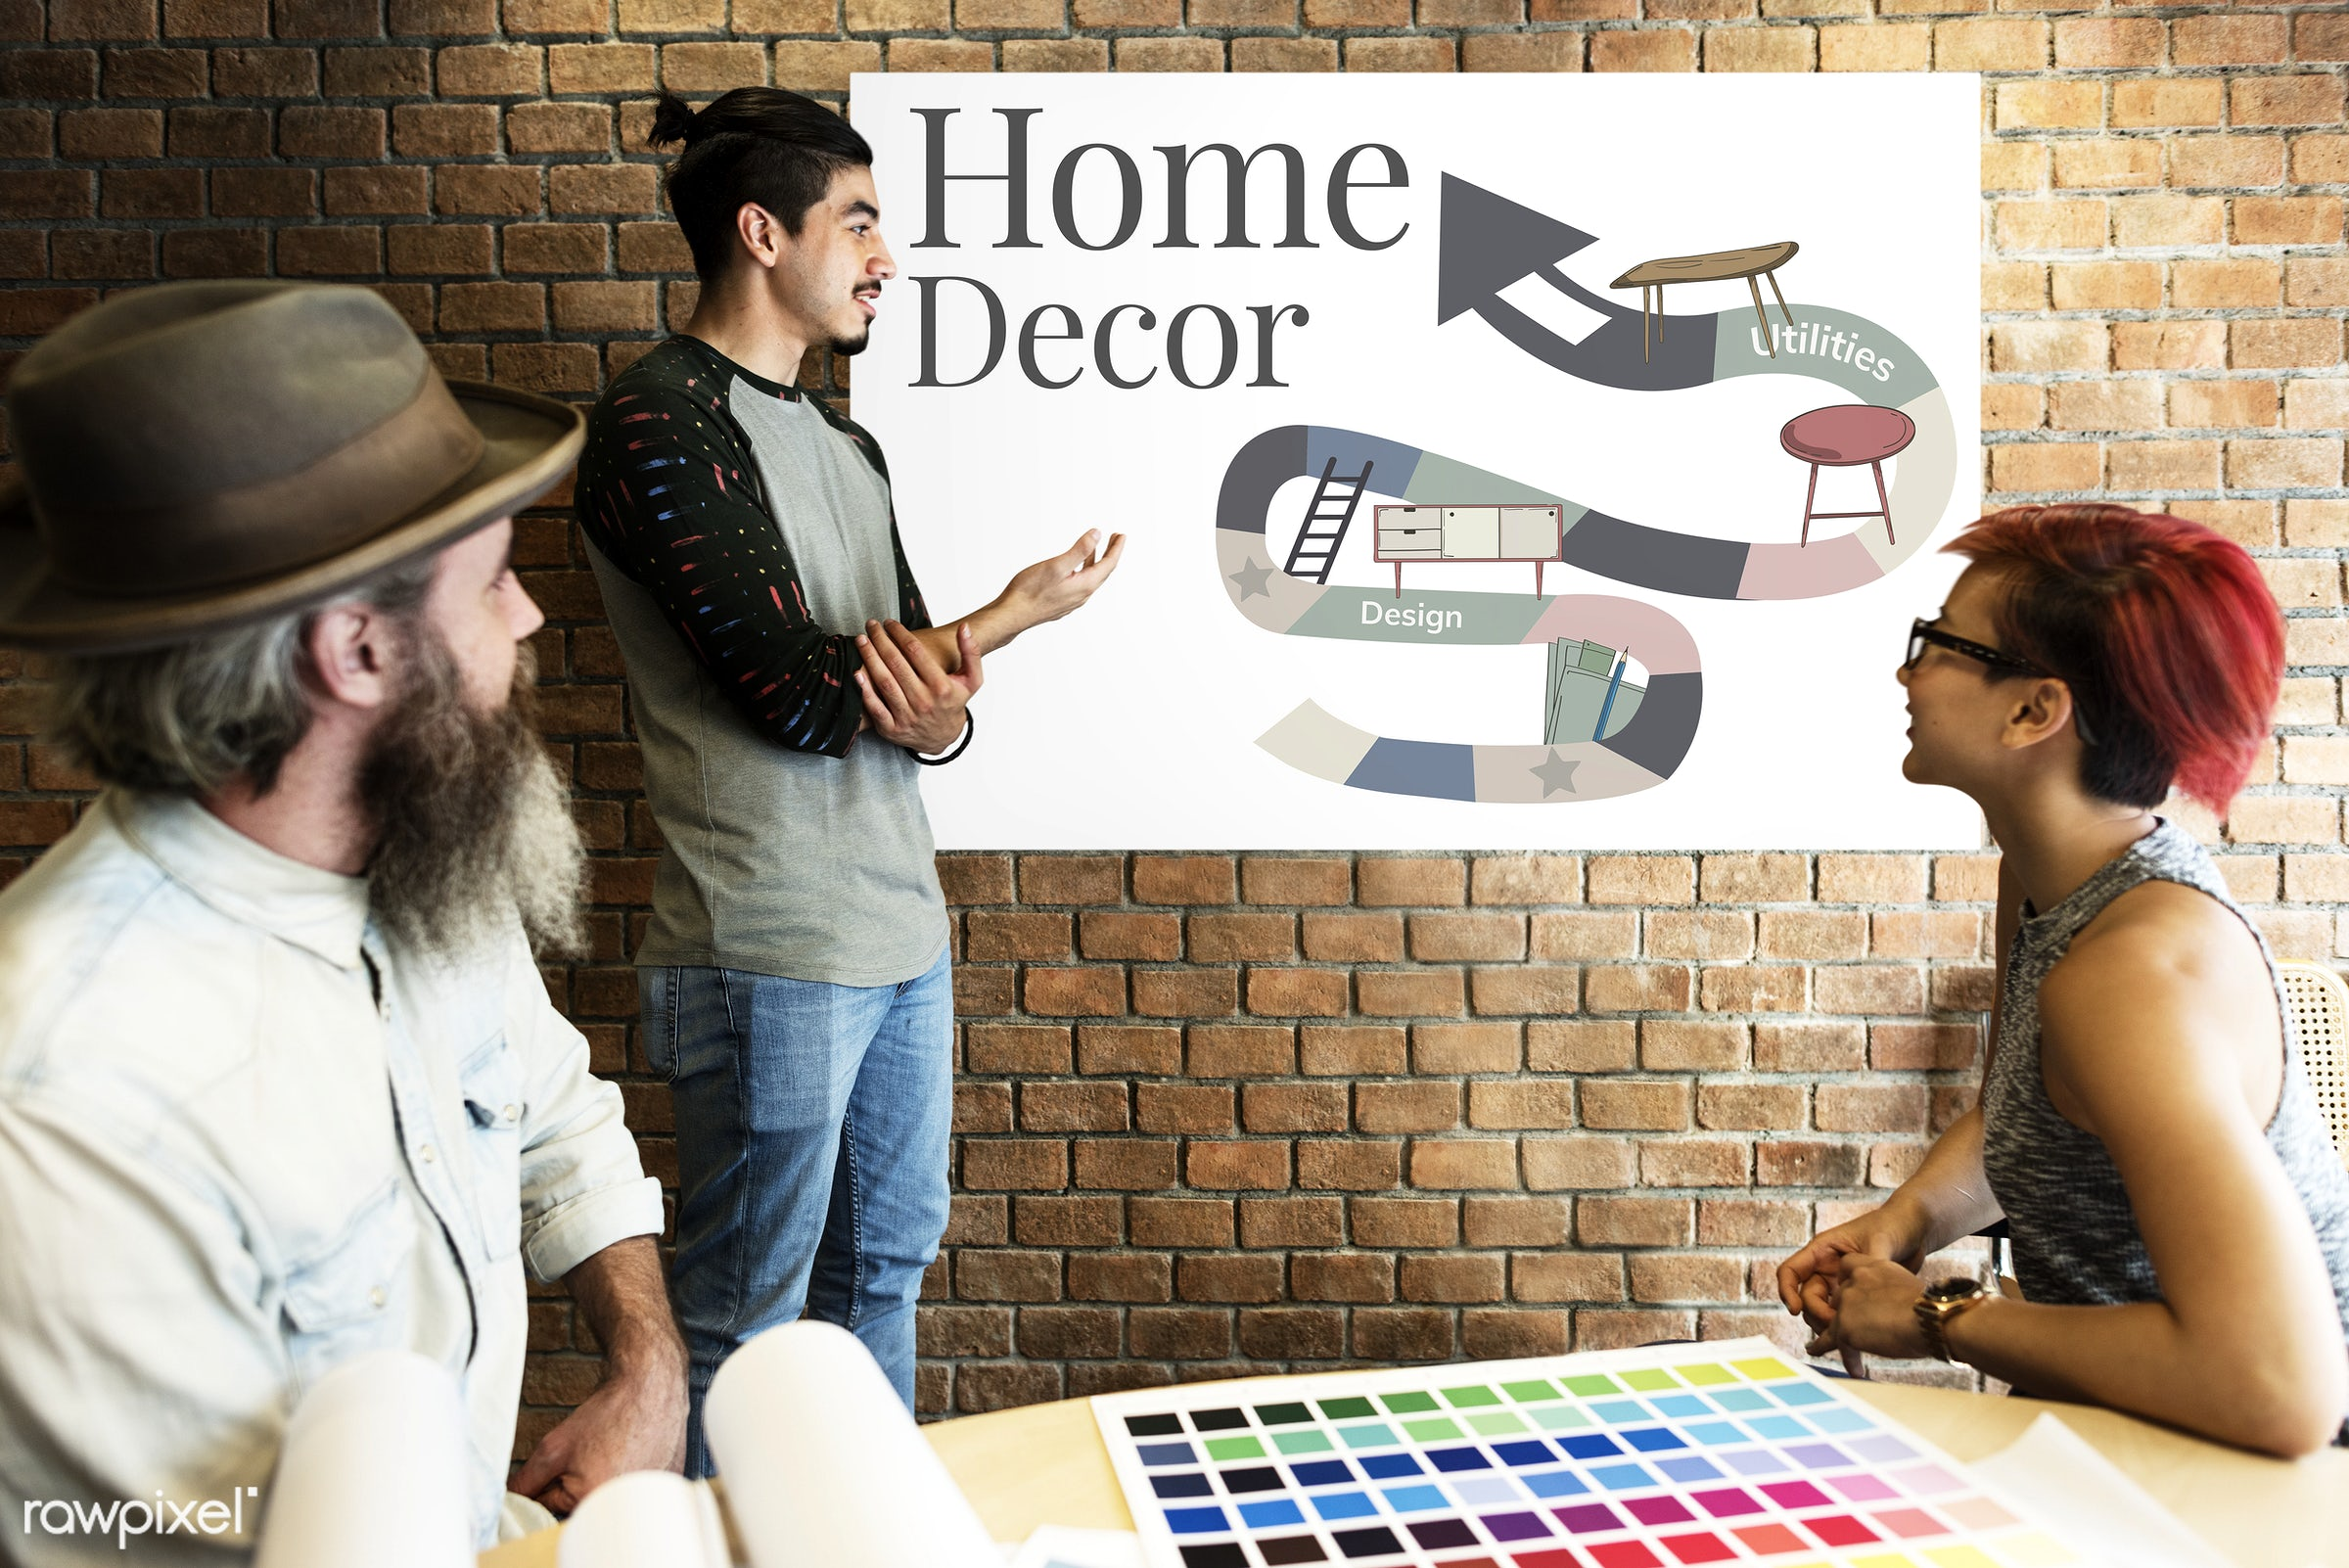 appliances, architecture, art, beard, board, brick wall, chart, color chart, colors, concept, creative, creativity, decor,...